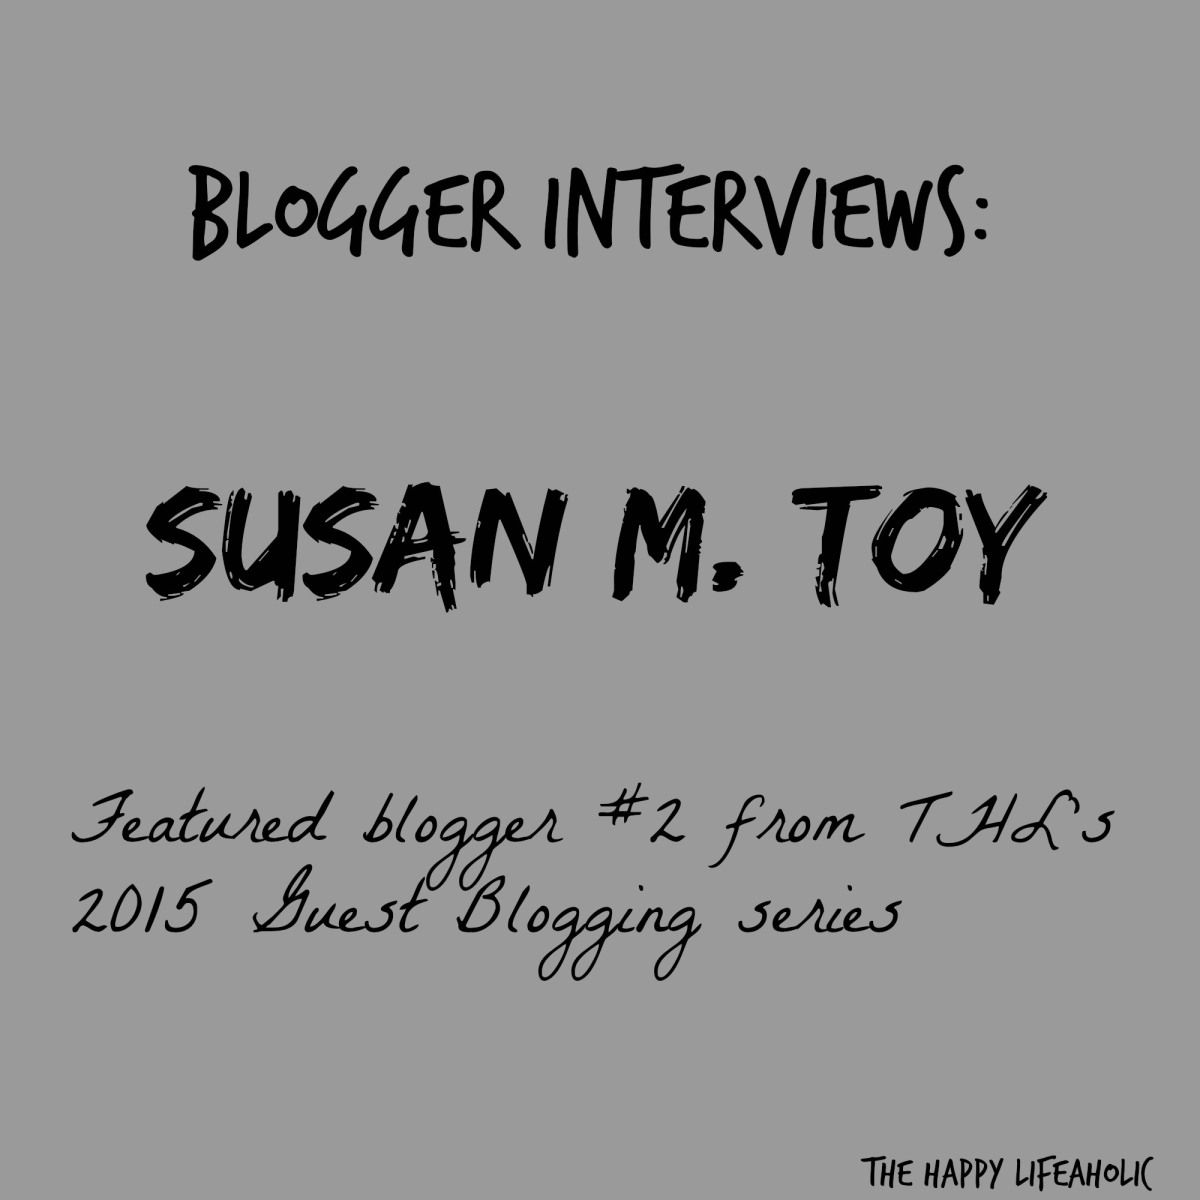 In preparation for next week's guest post, THL played 20 questions with our second featured blogger in our 2015 guest blogging series, Susan M. Toy. Not only was she a delight to work with, Susan a...